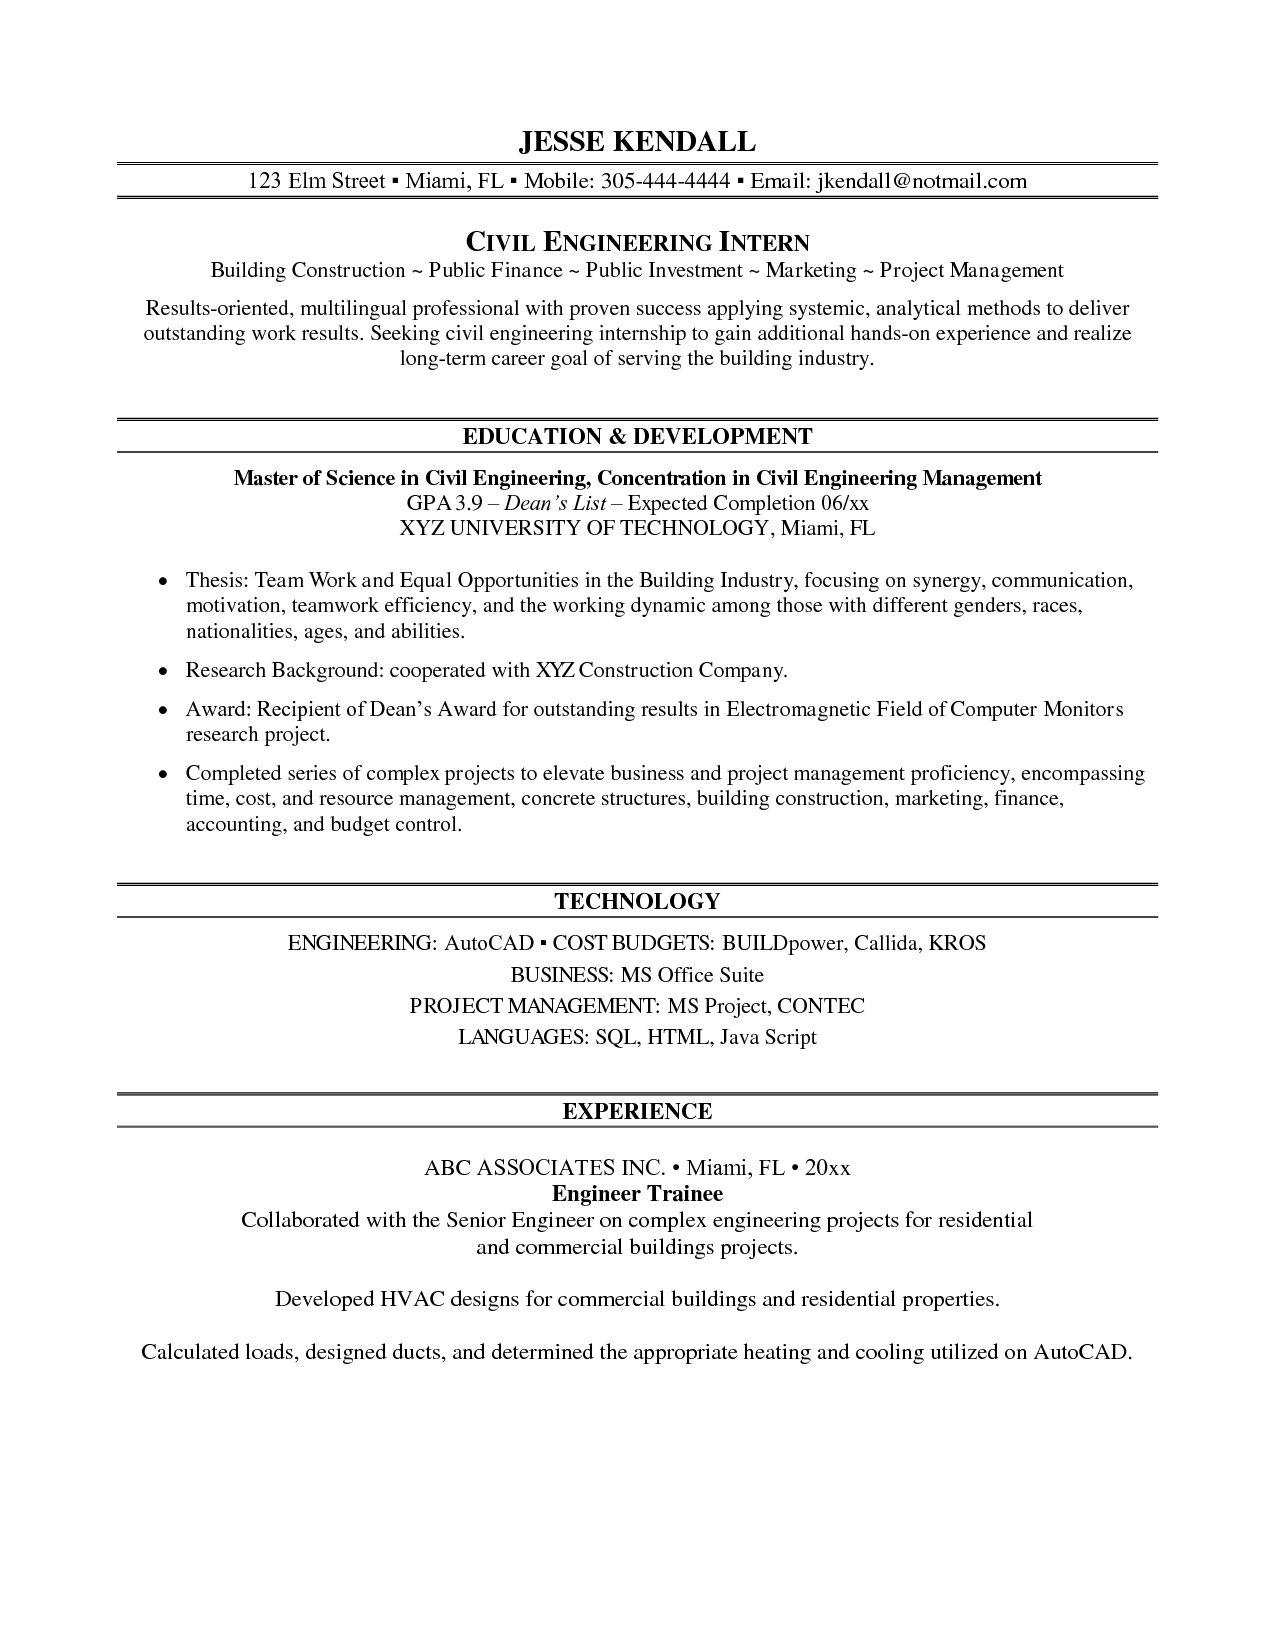 Resume Resume Format For Internship Application internship on resume best template collection httpwww jobresume website